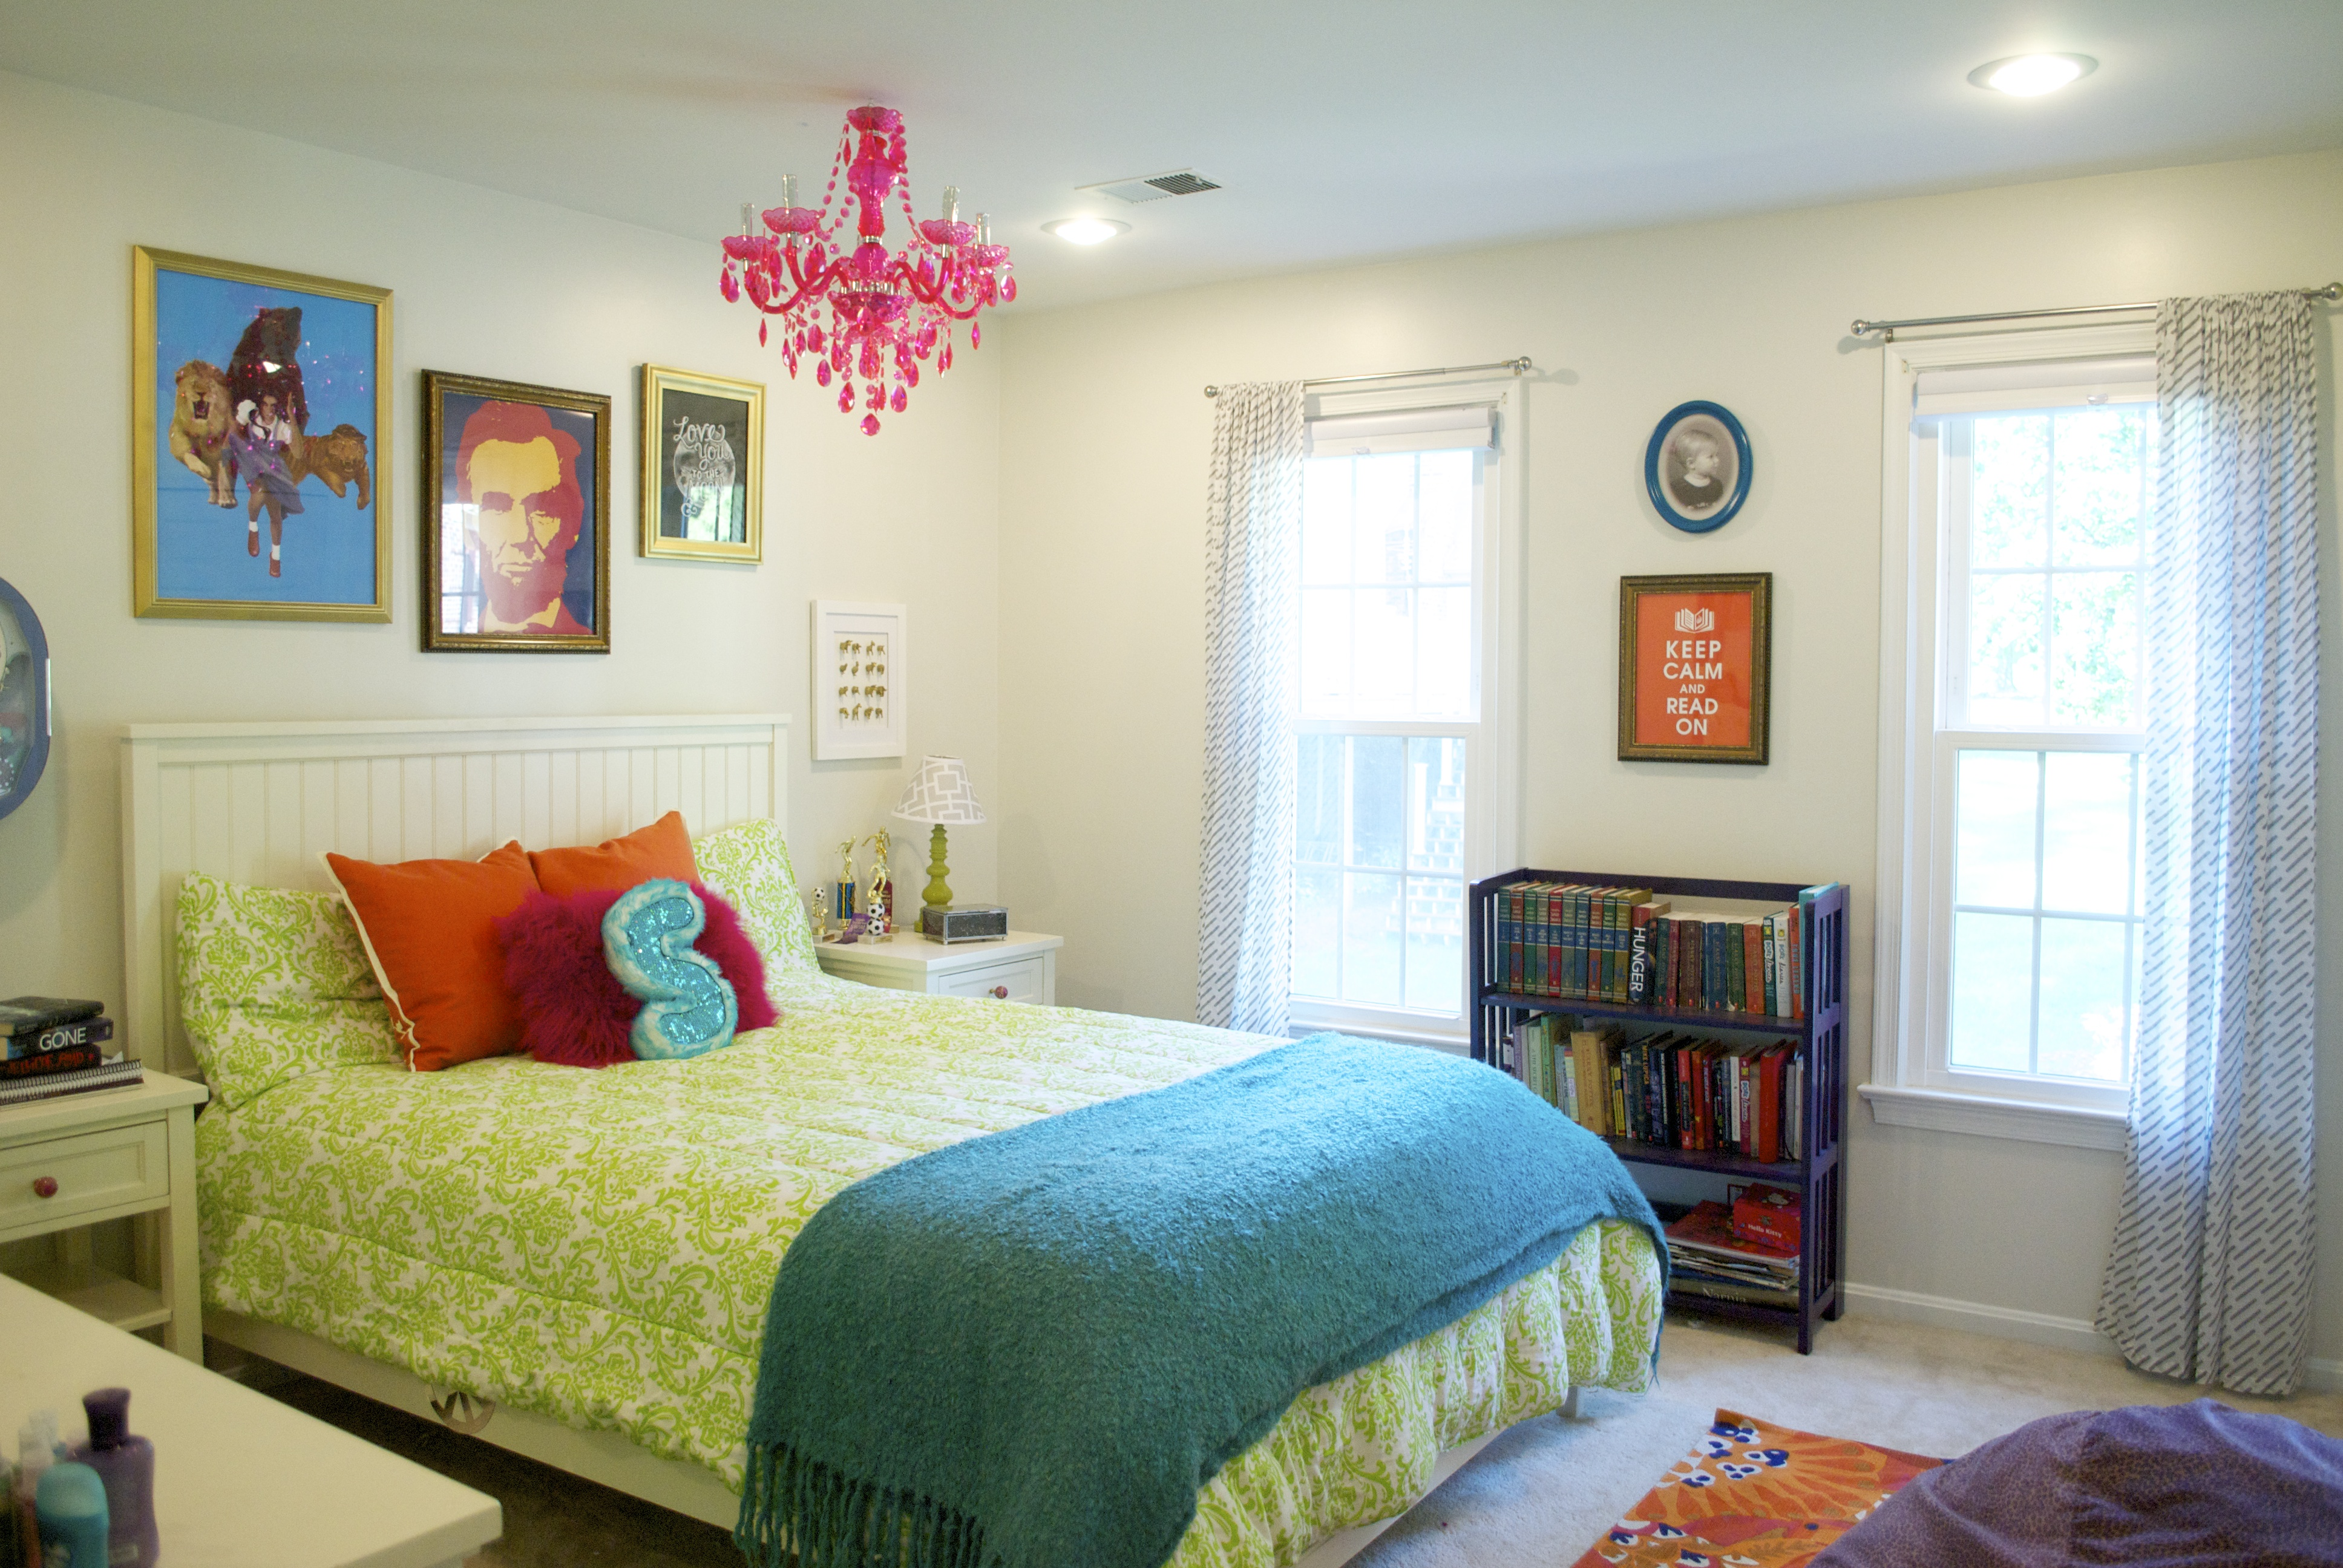 Bedroom Design Ideas For 12 Year Olds